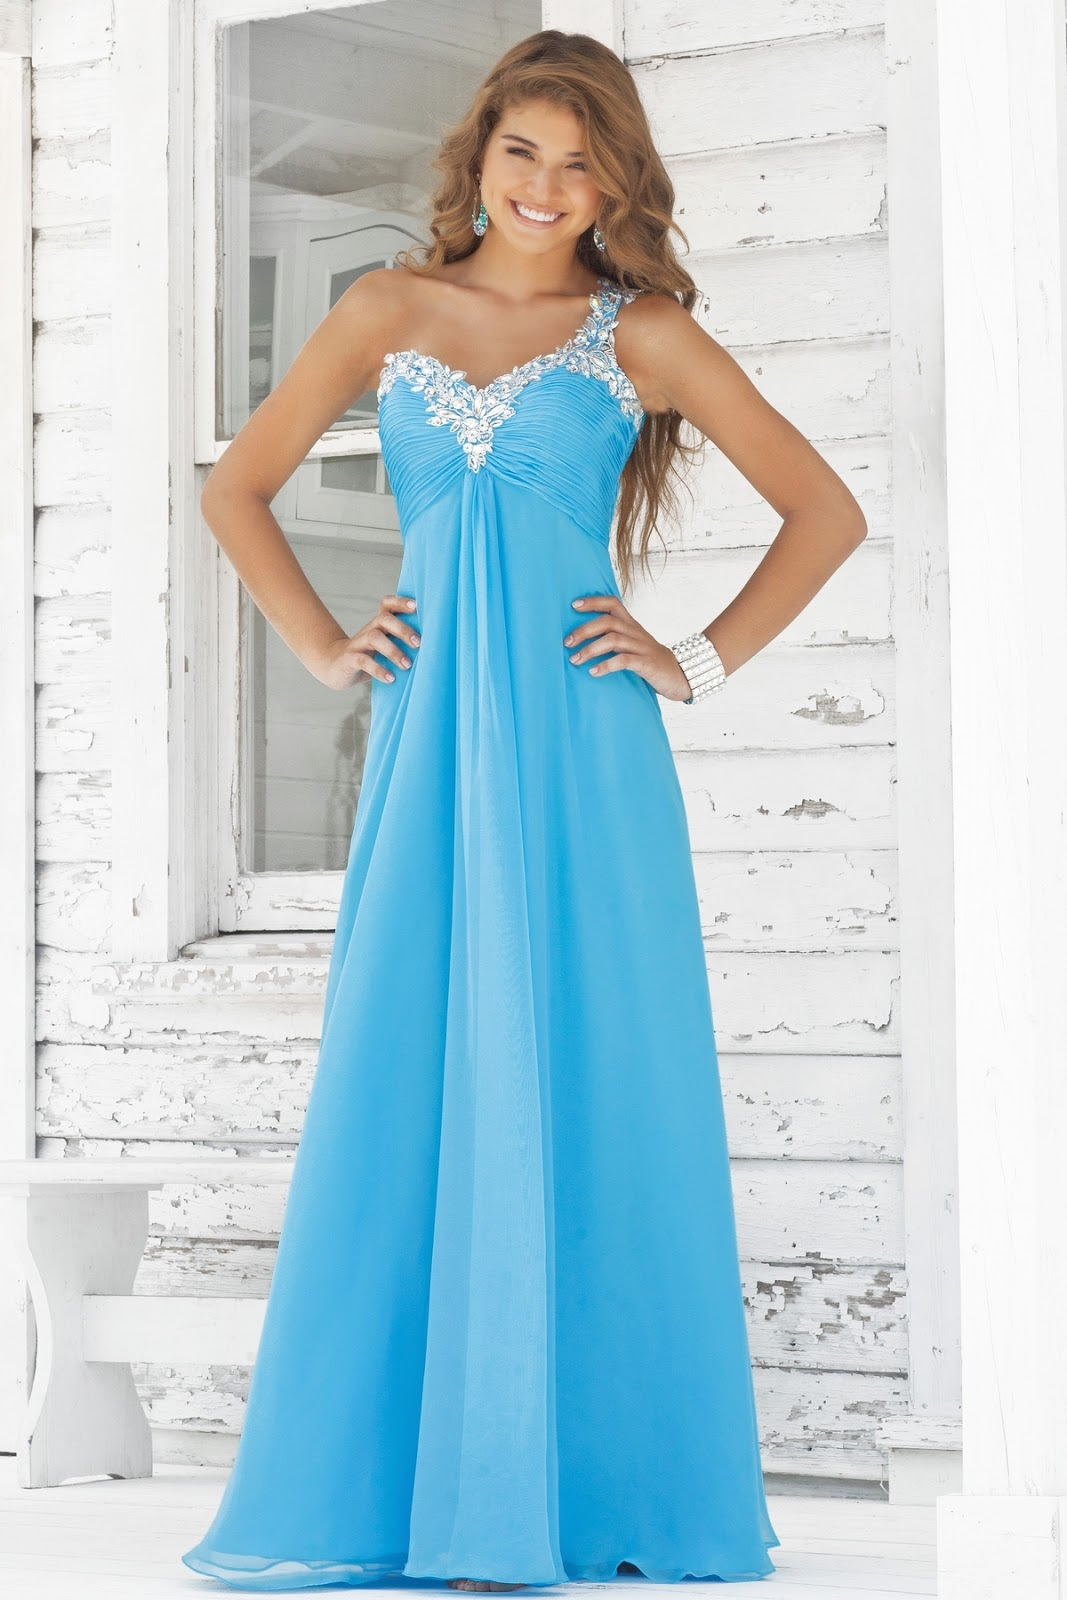 Royal Blue Prom Dresses Dillards Photo Album - Klarosa